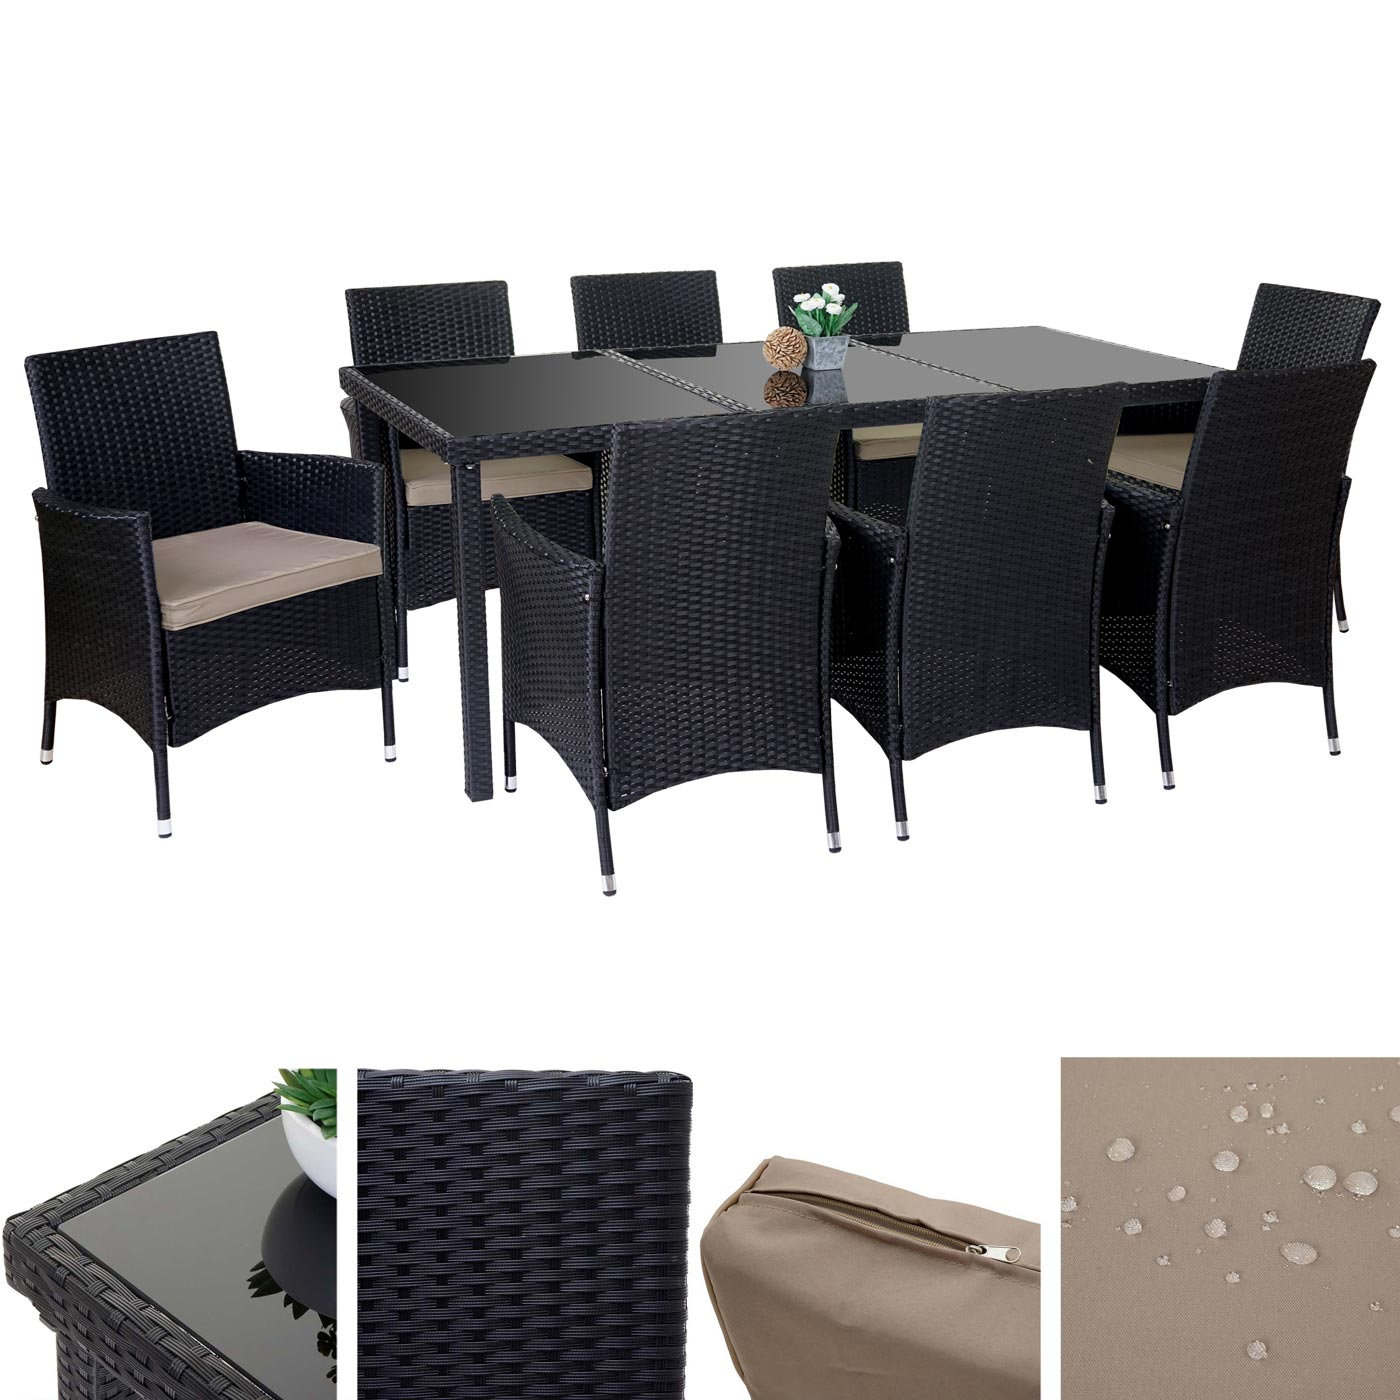 poly rattan garnitur terni garten sitzgruppe tisch 8 sessel alu anthrazit kissen beige. Black Bedroom Furniture Sets. Home Design Ideas